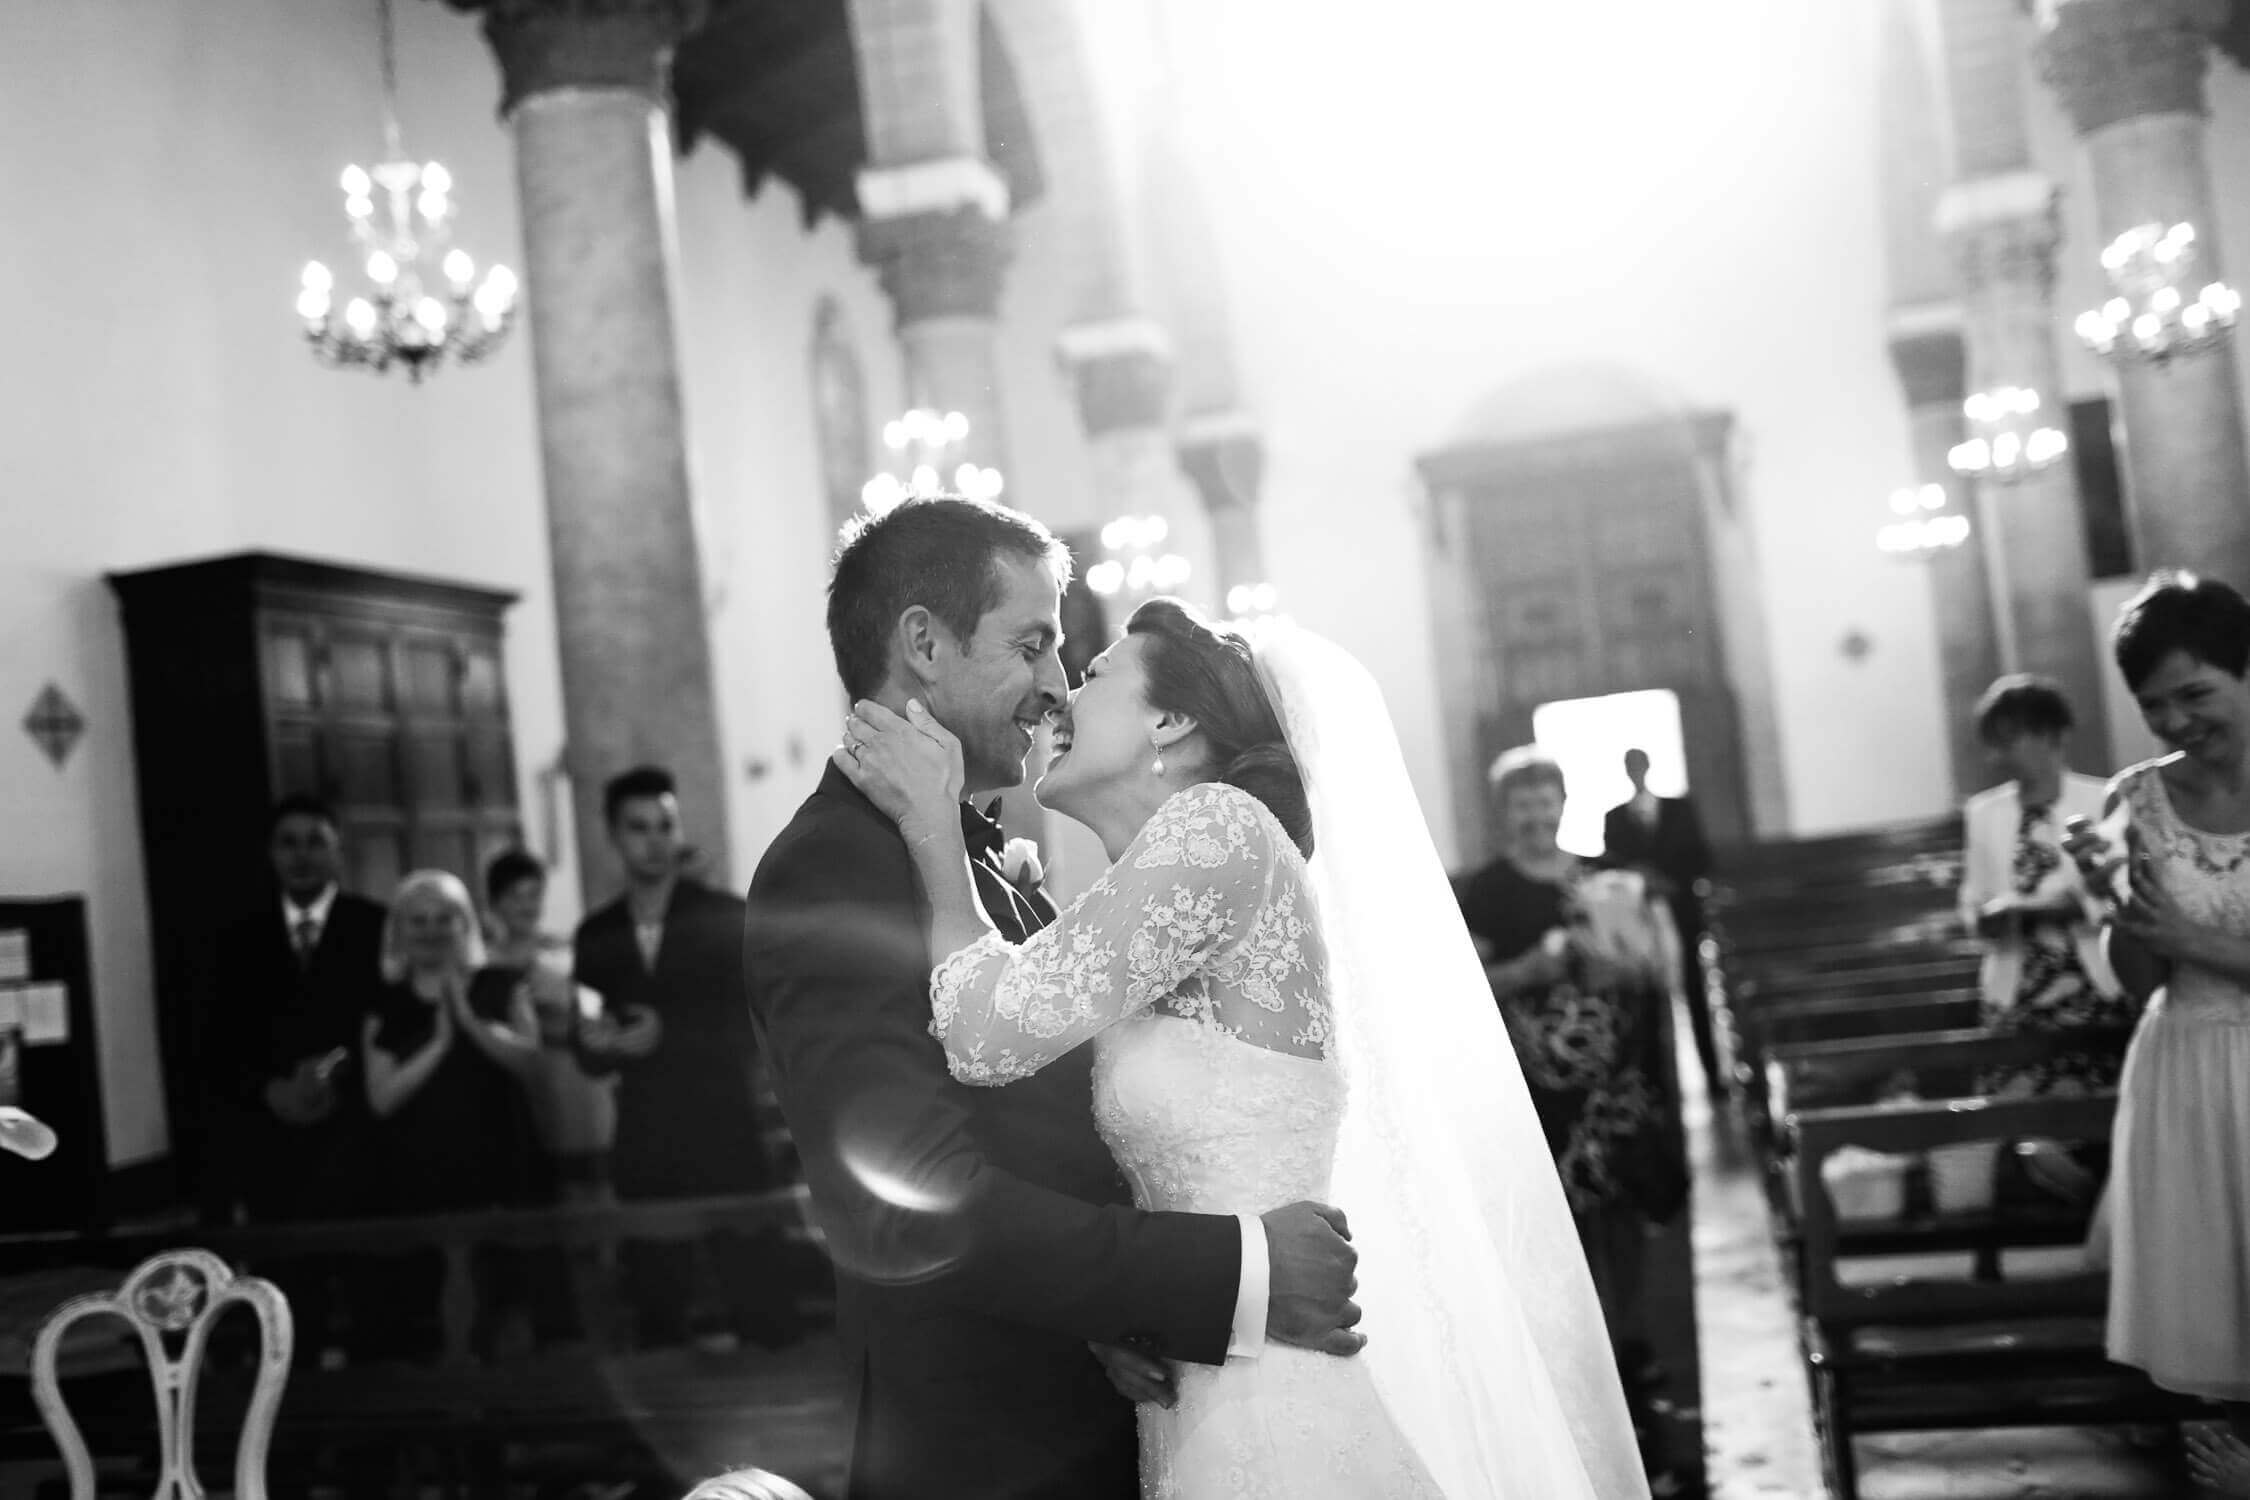 spouses embrace each other in the church, black and white photo for marriage of Nino Lombardo